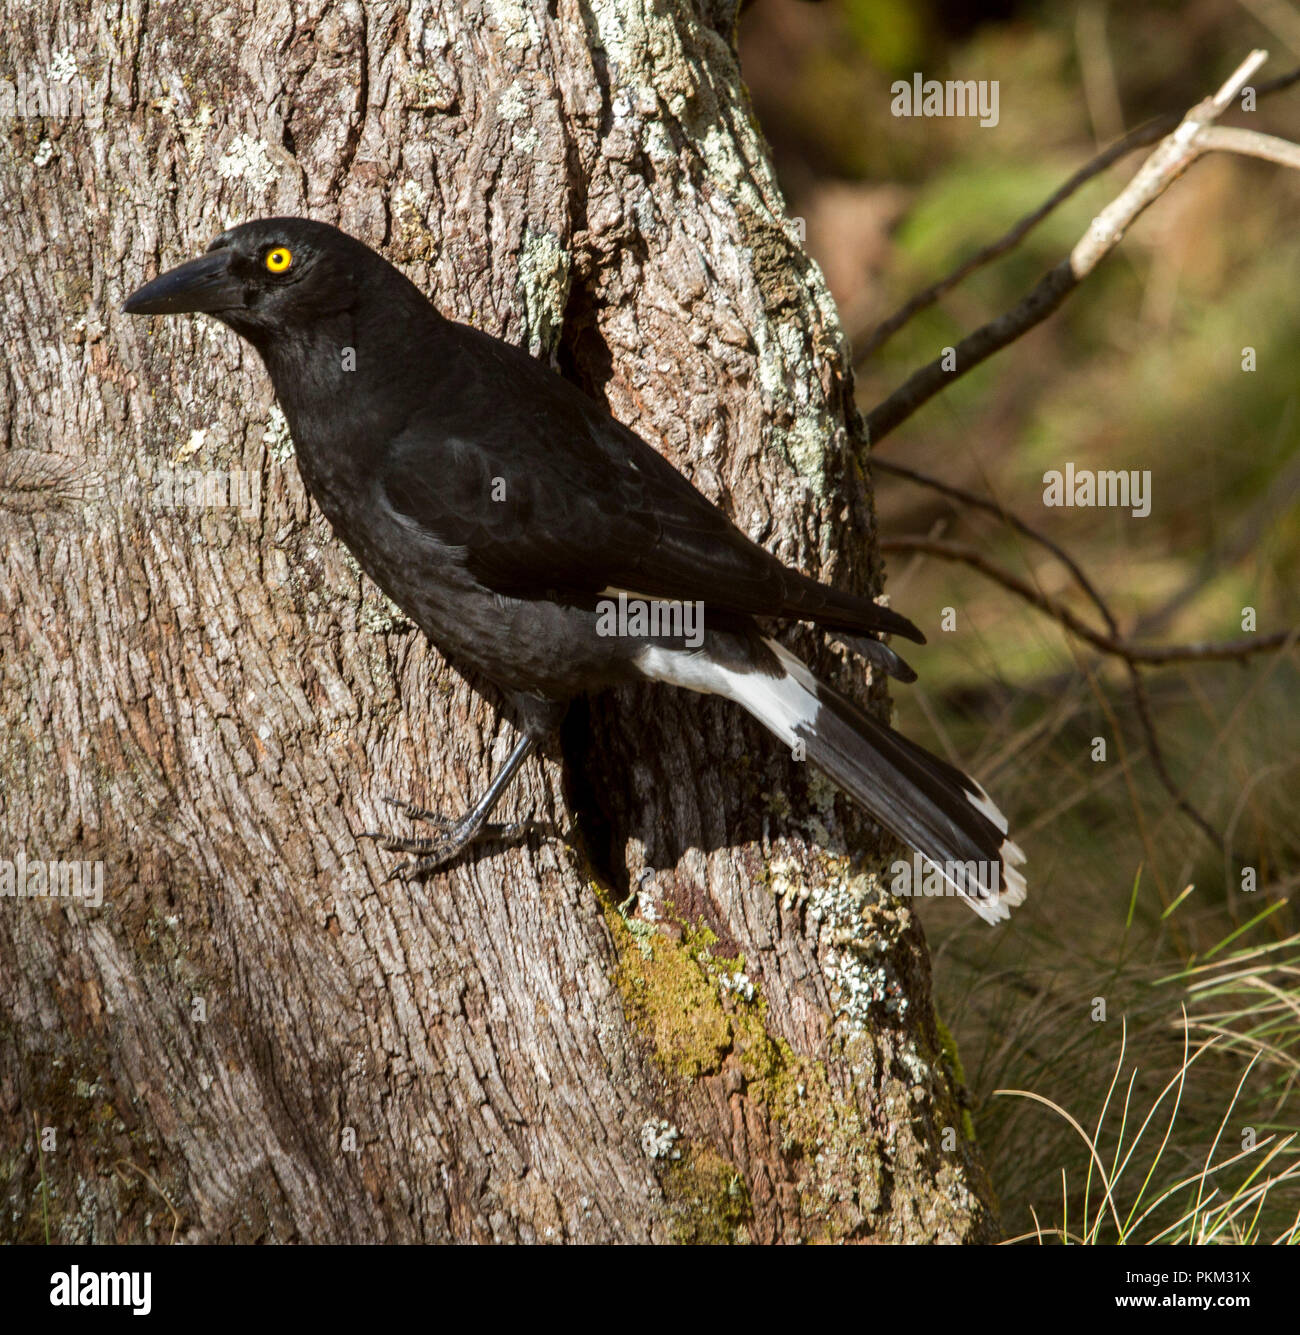 Australian pied currawong, Strepera graculina, clinging to side of tree trunk at Barrington Tops National Park NSW - Stock Image